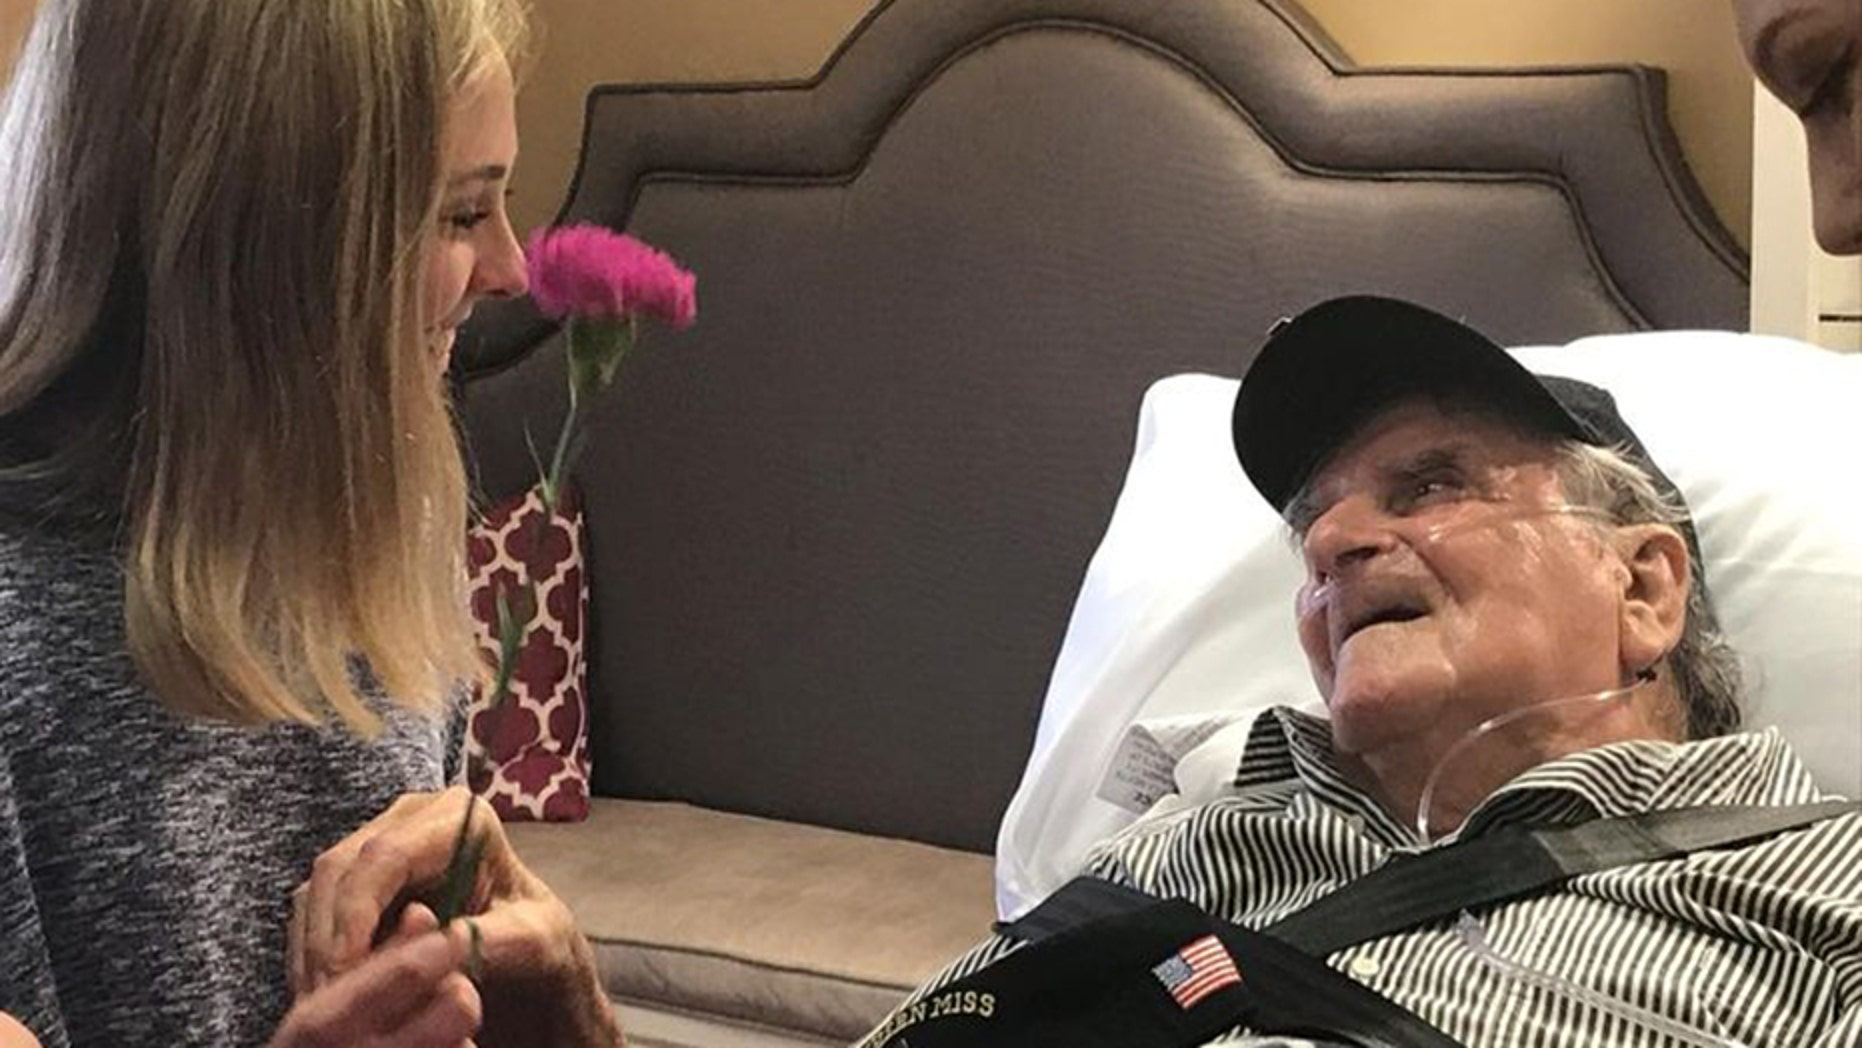 The sisters of Phi Mu Sorority at the University of Southern Miss granted a final wish of 92-year-old Navy veteran Paul Sonnier to dance with a beautiful woman.